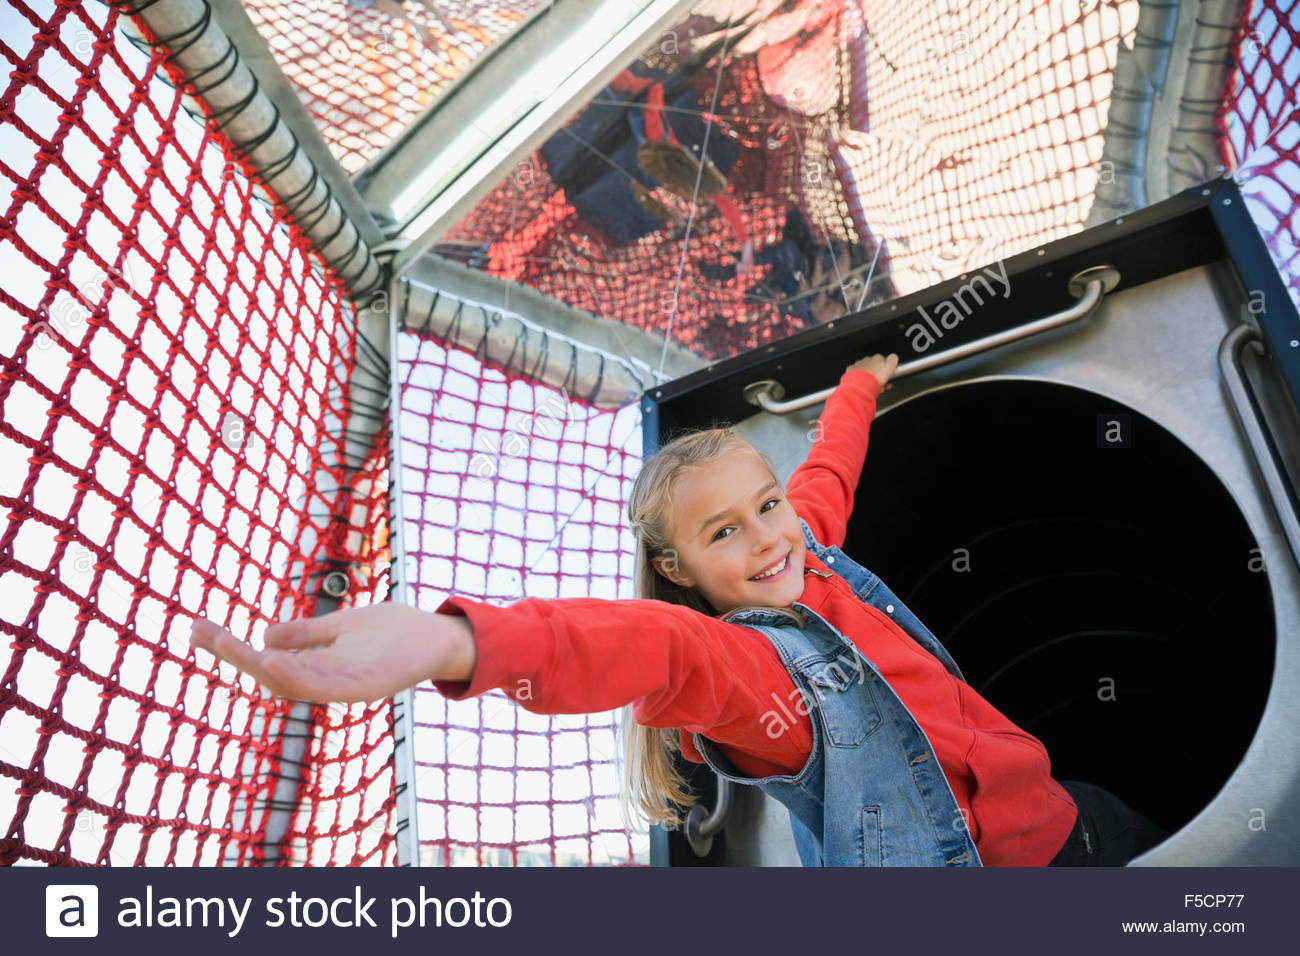 Portrait smiling girl with arms outstretched at playground - Stock Image